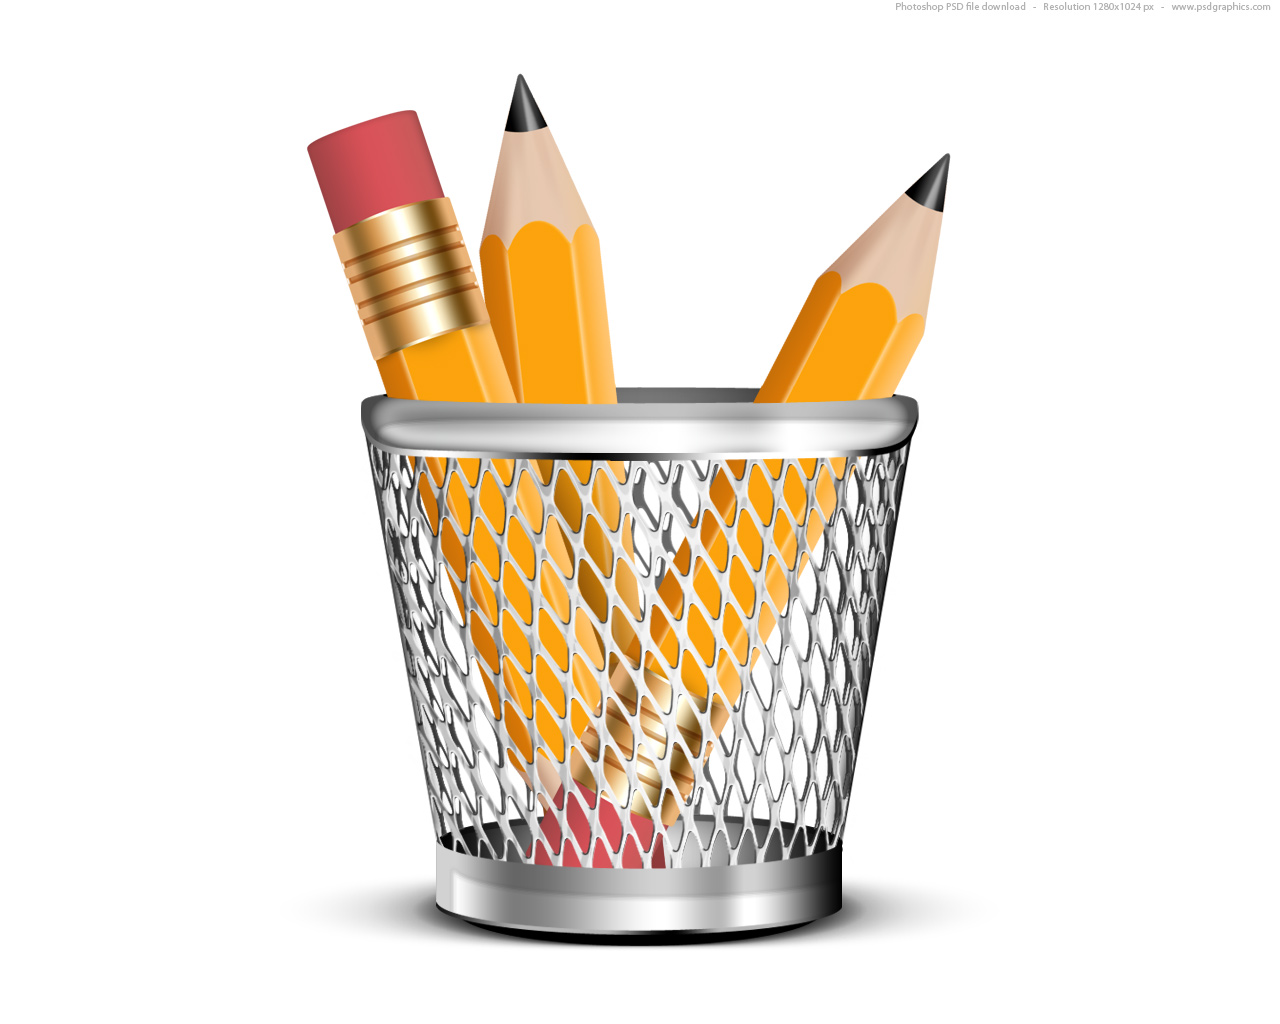 Pencils in a pencil holder, PSD icon | PSDGraphics